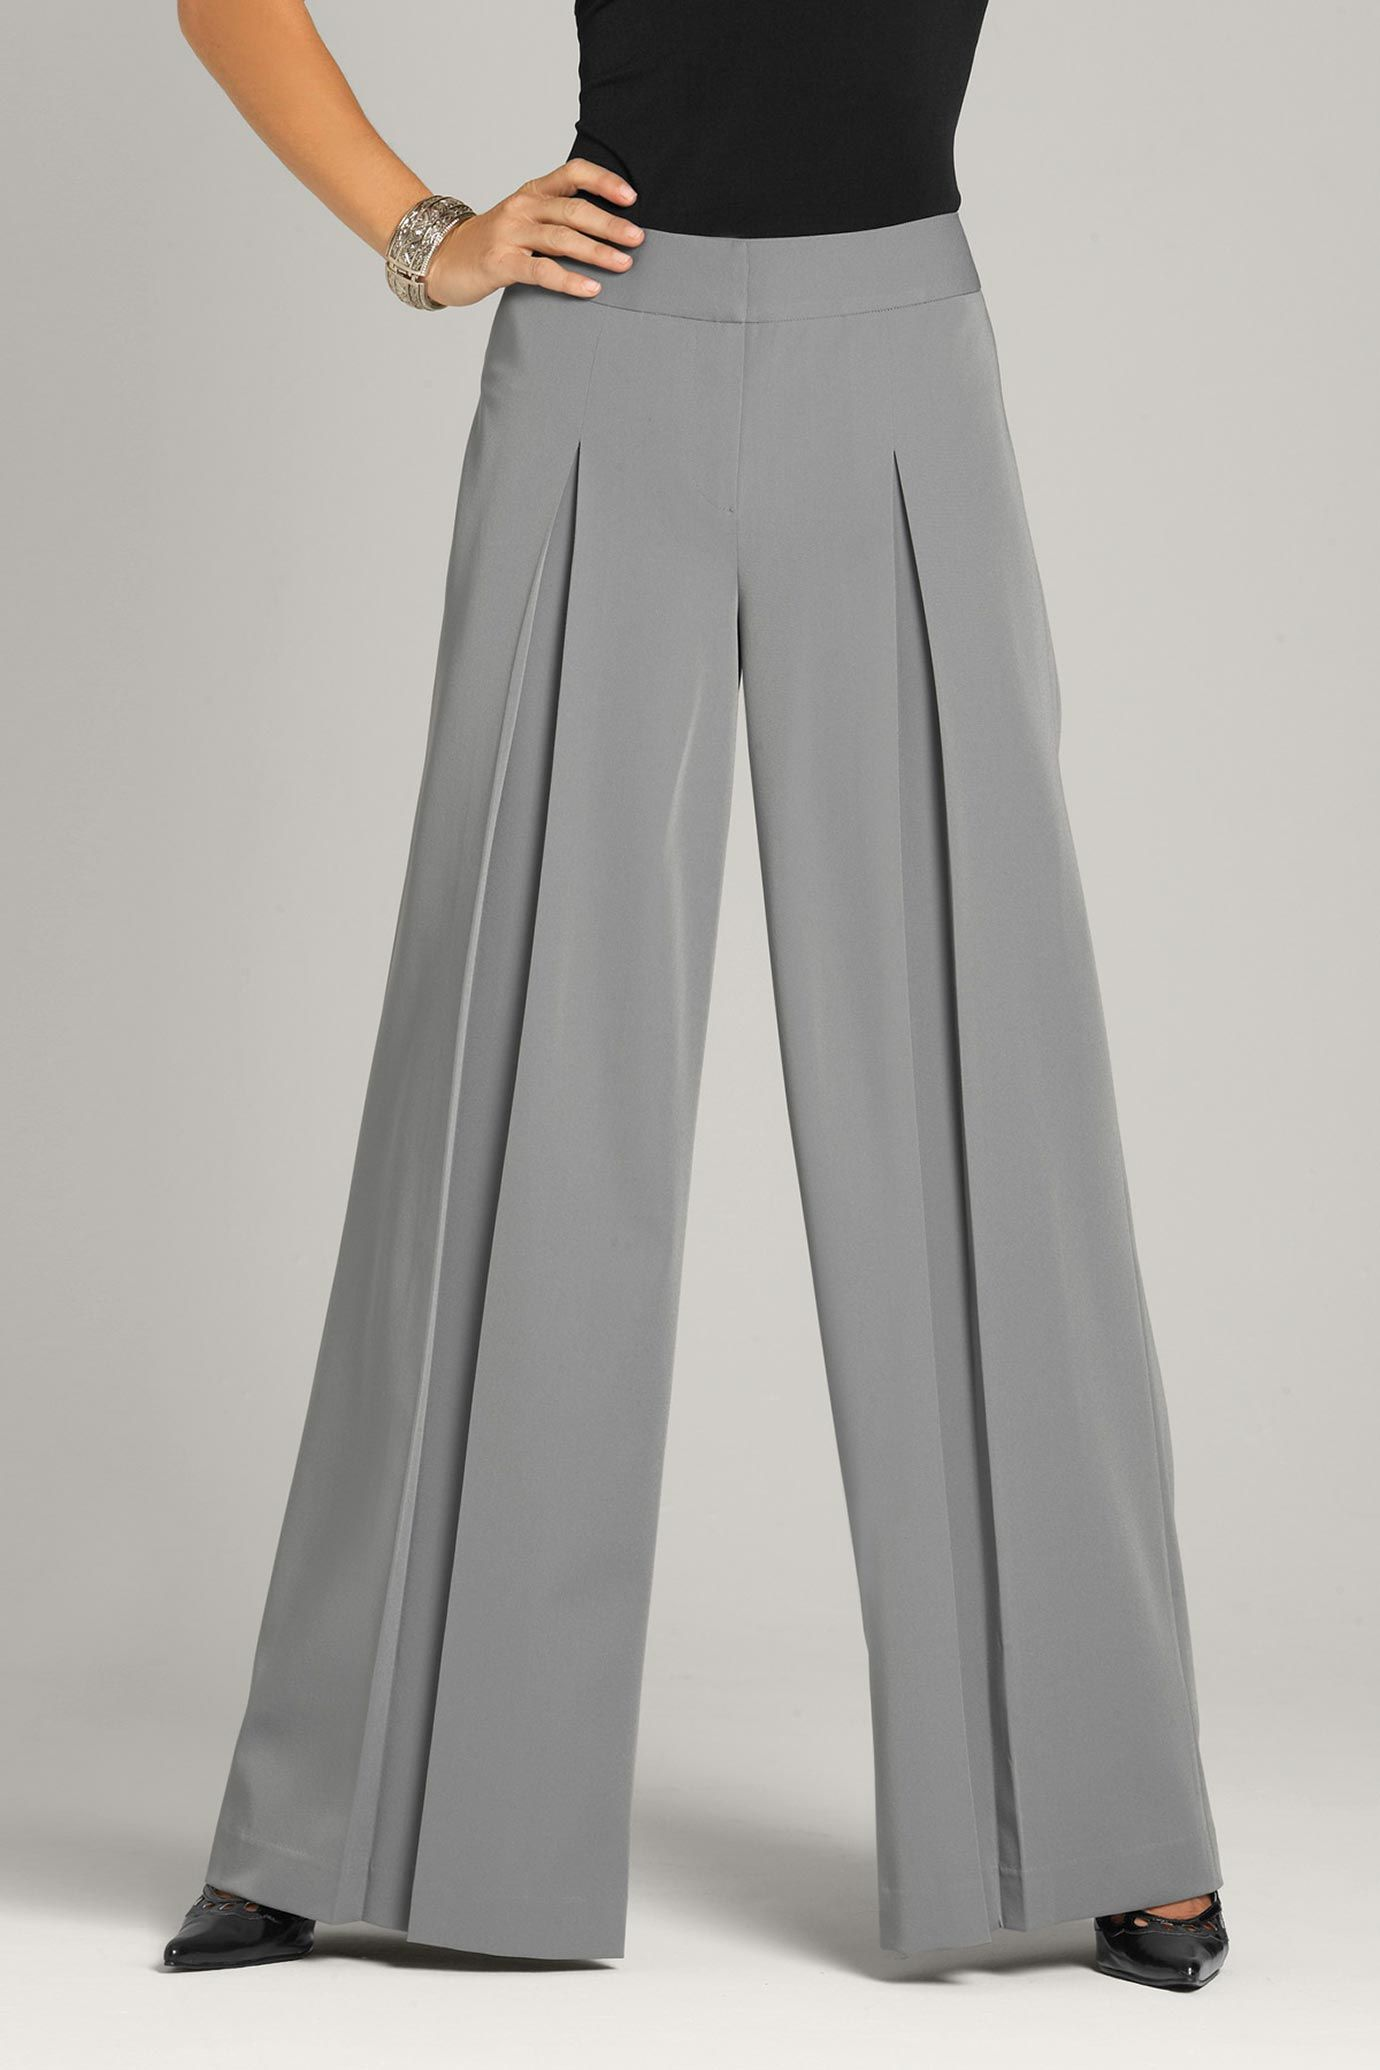 palazzo pants pleated palazzo pant love the pleat